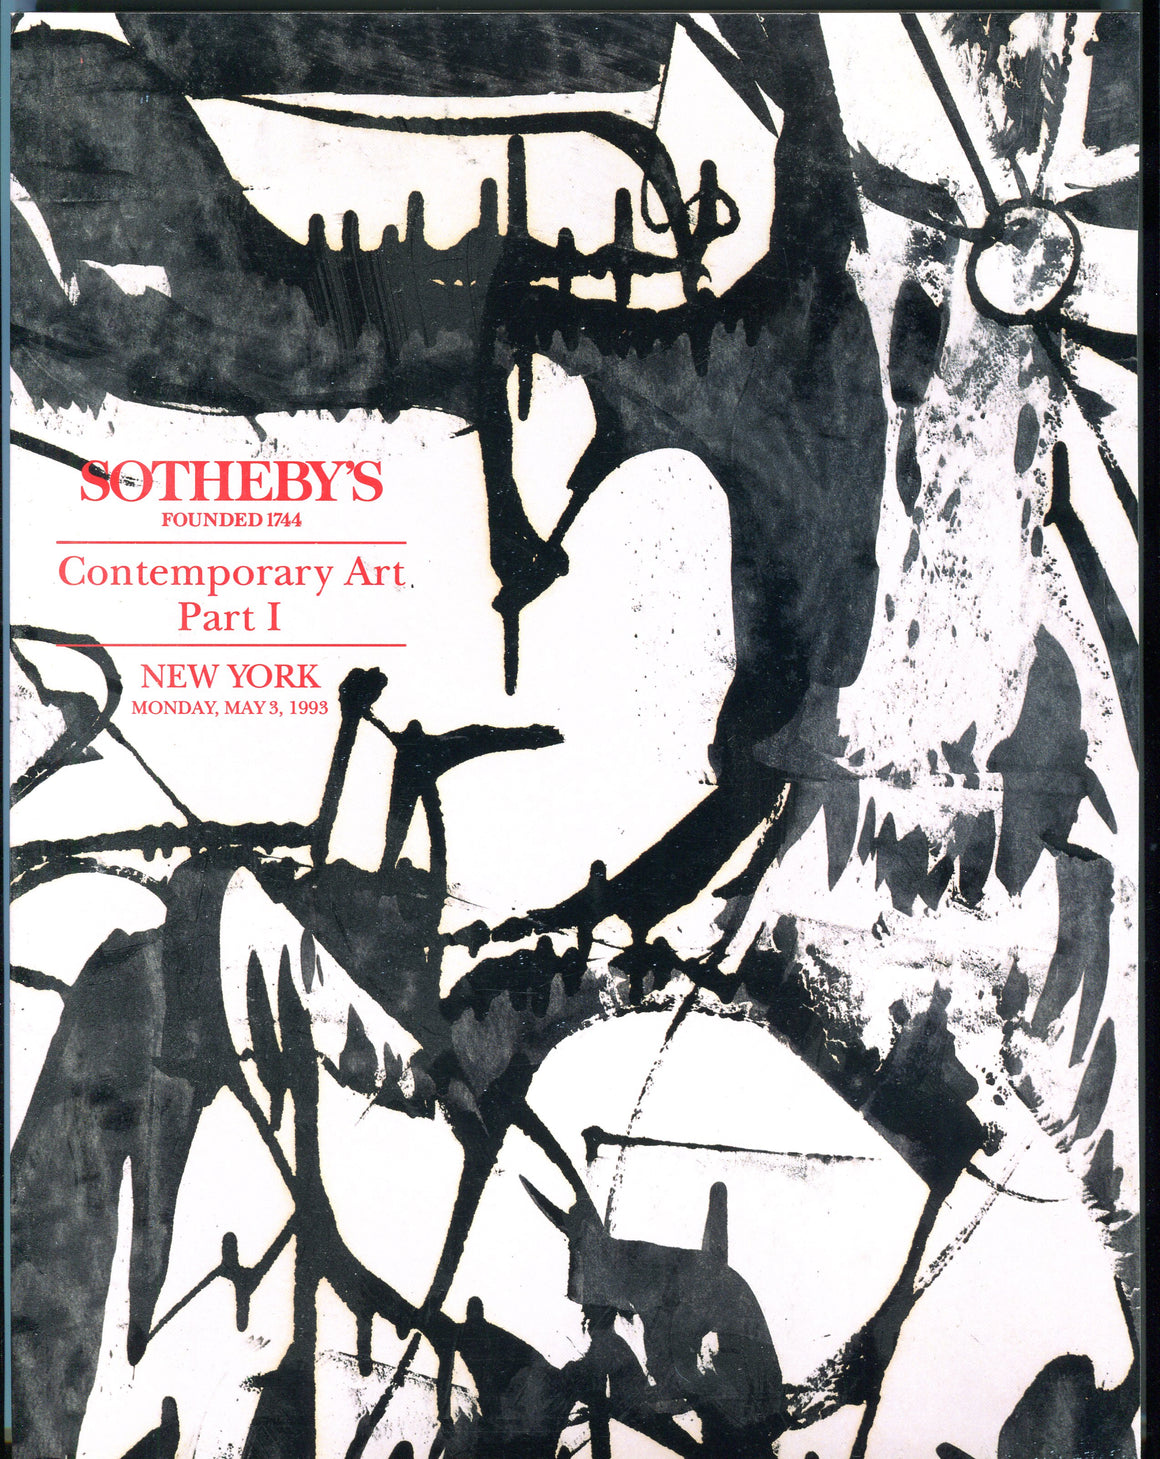 Sothebys Auction Catalog May 3 1993 Contemporary Art, Part I